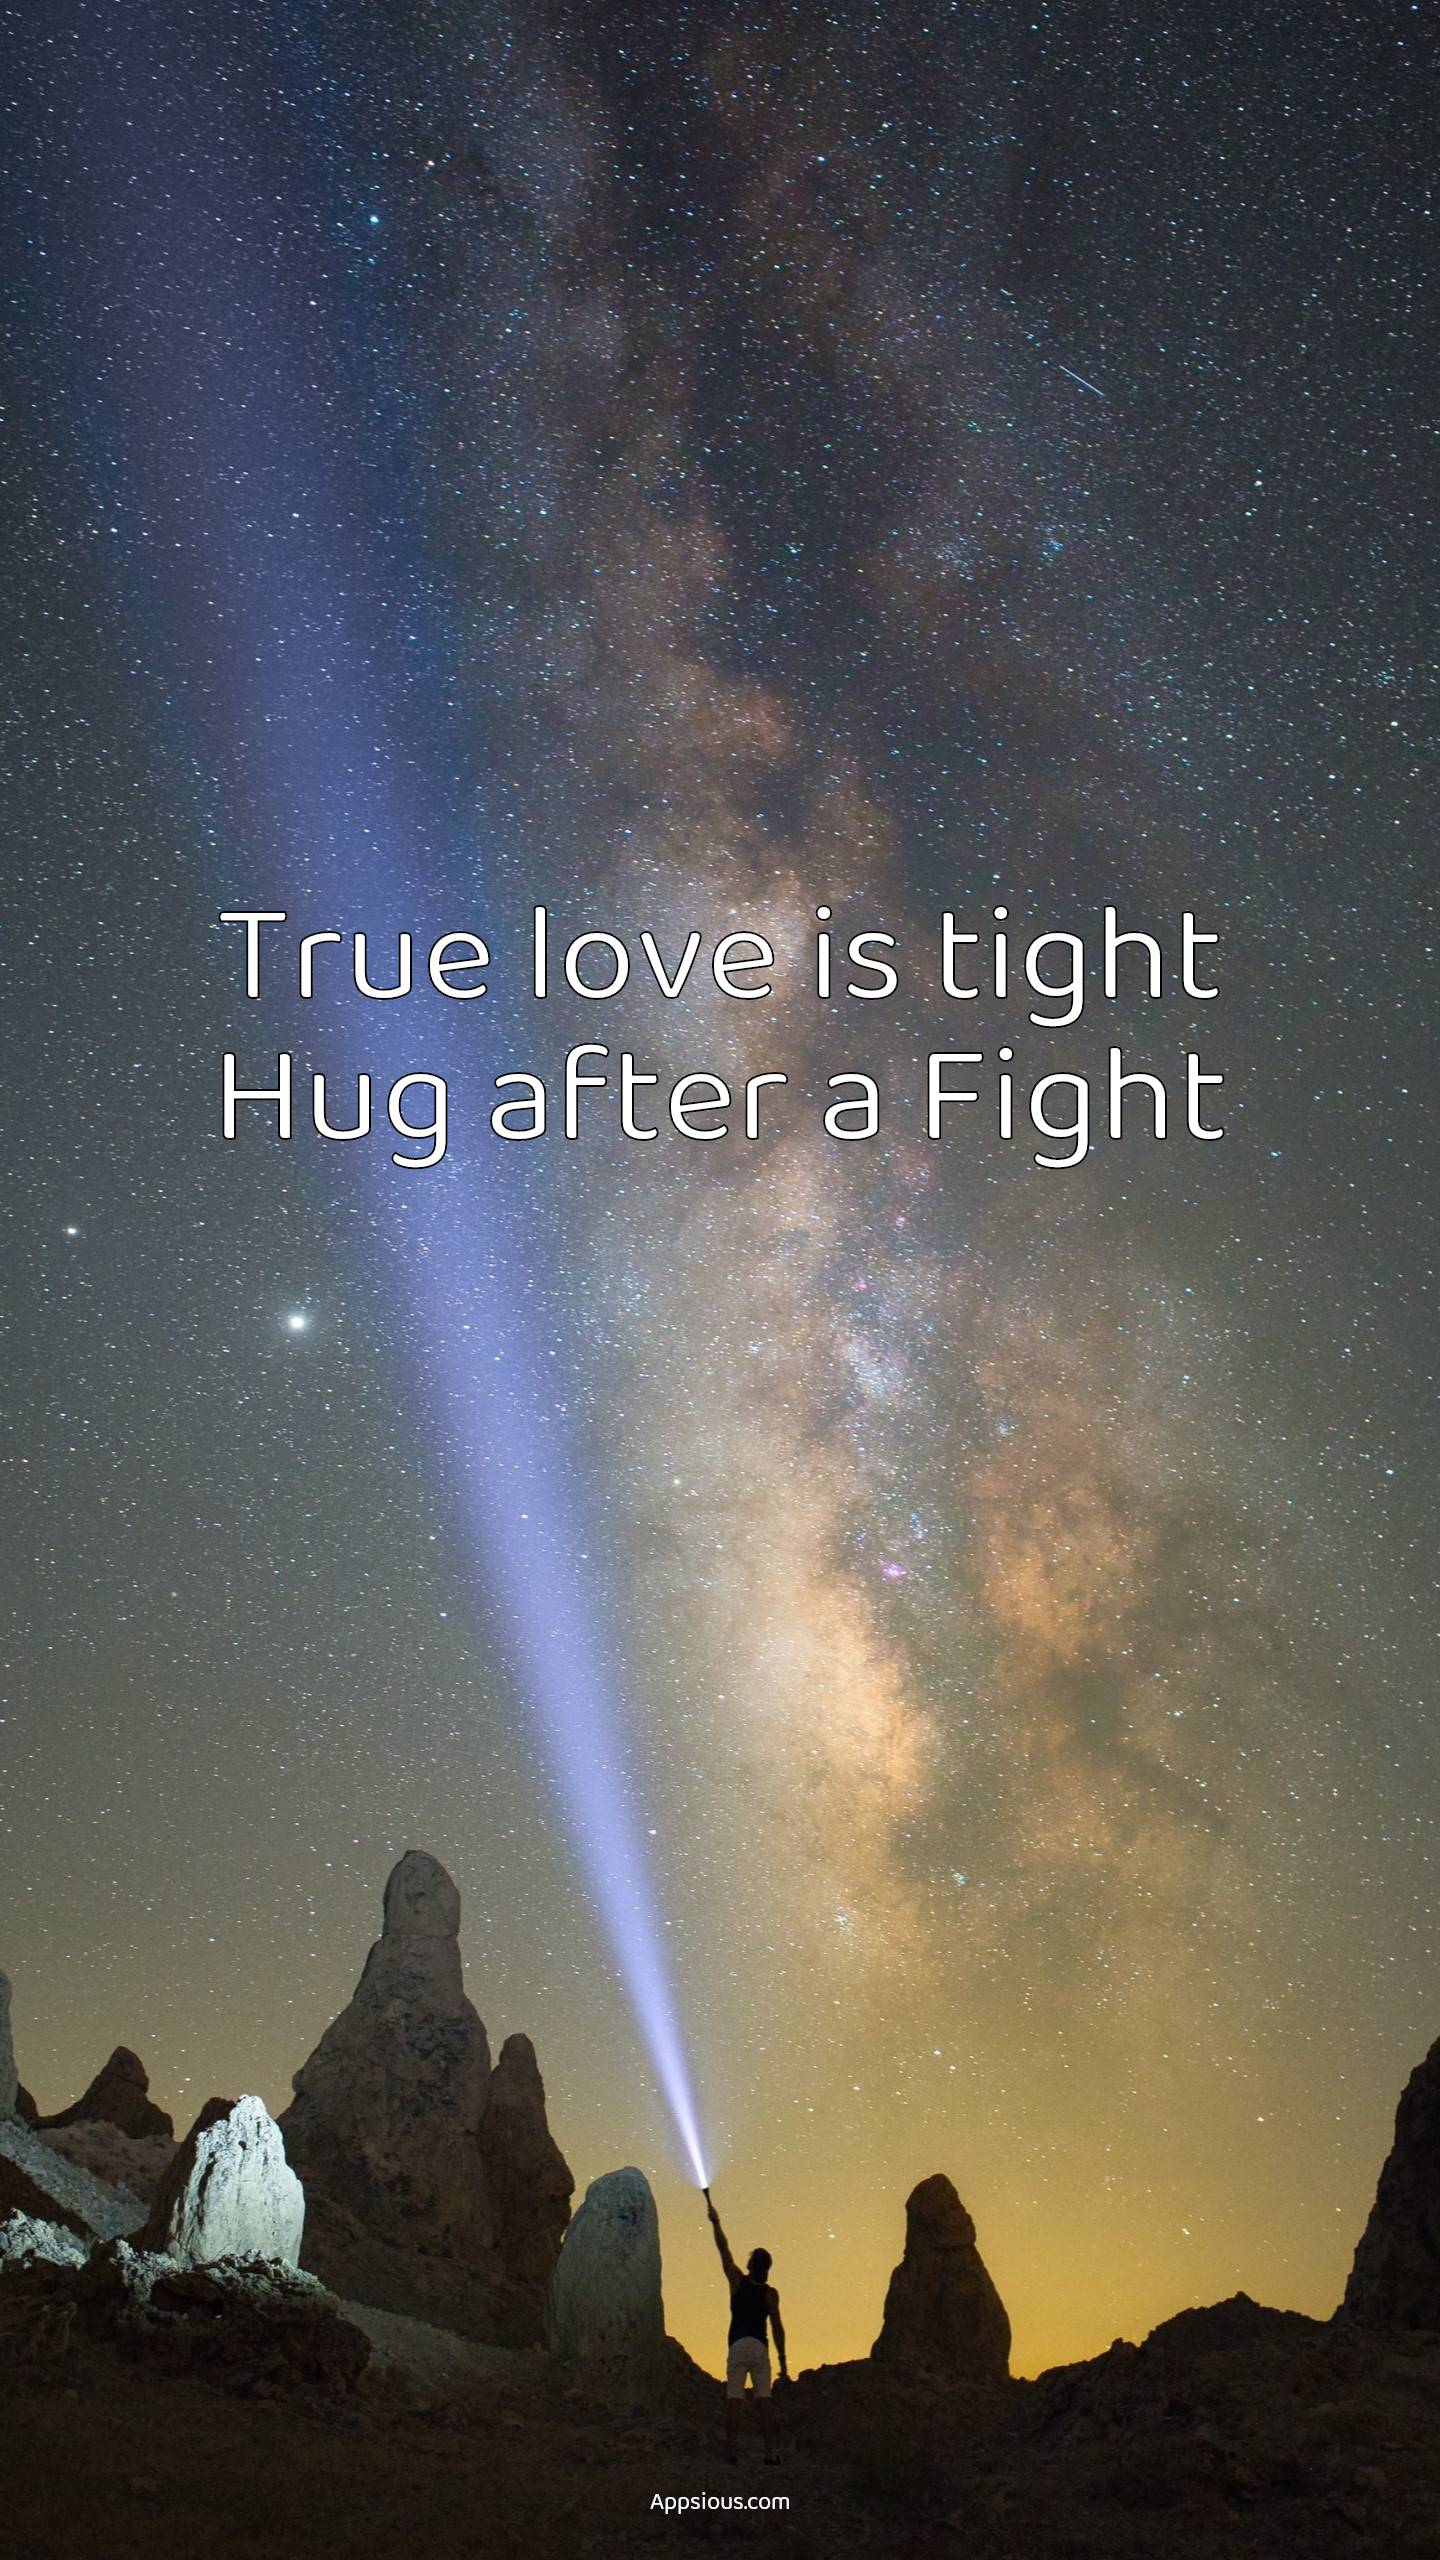 True love is tight Hug after a Fight